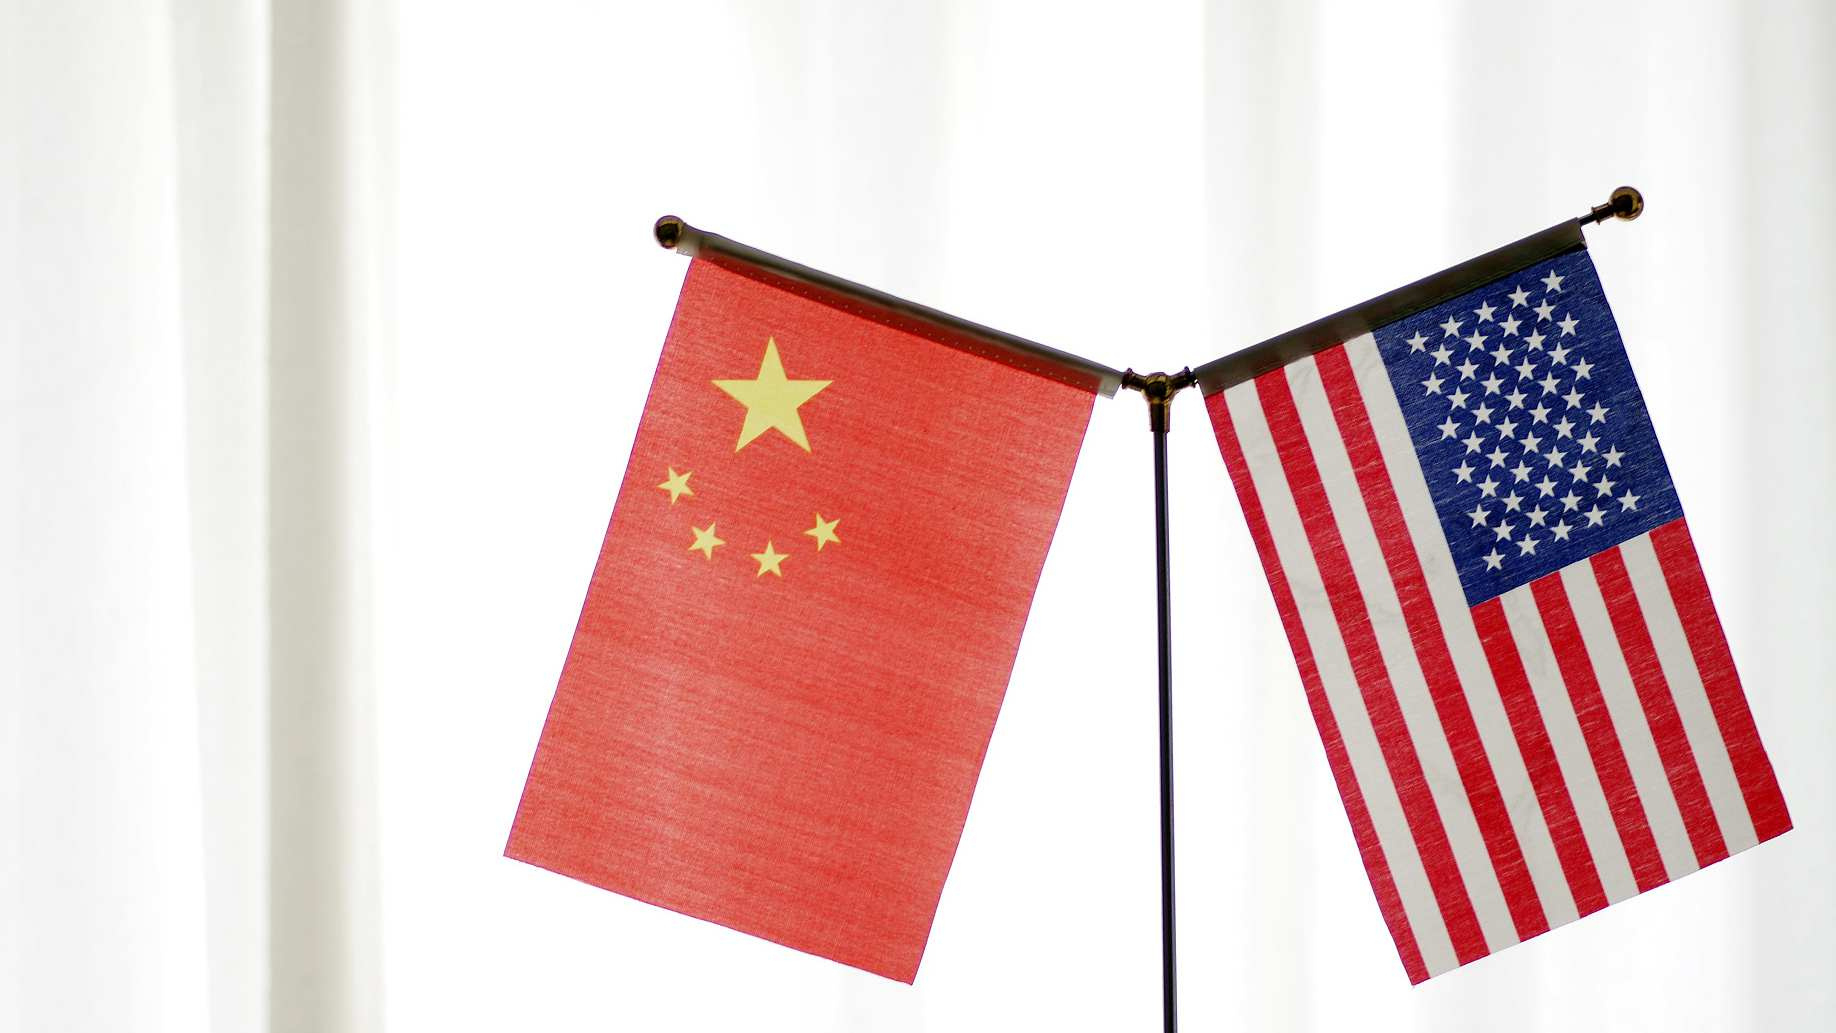 Senior Chinese official meets with US state secretary in New York